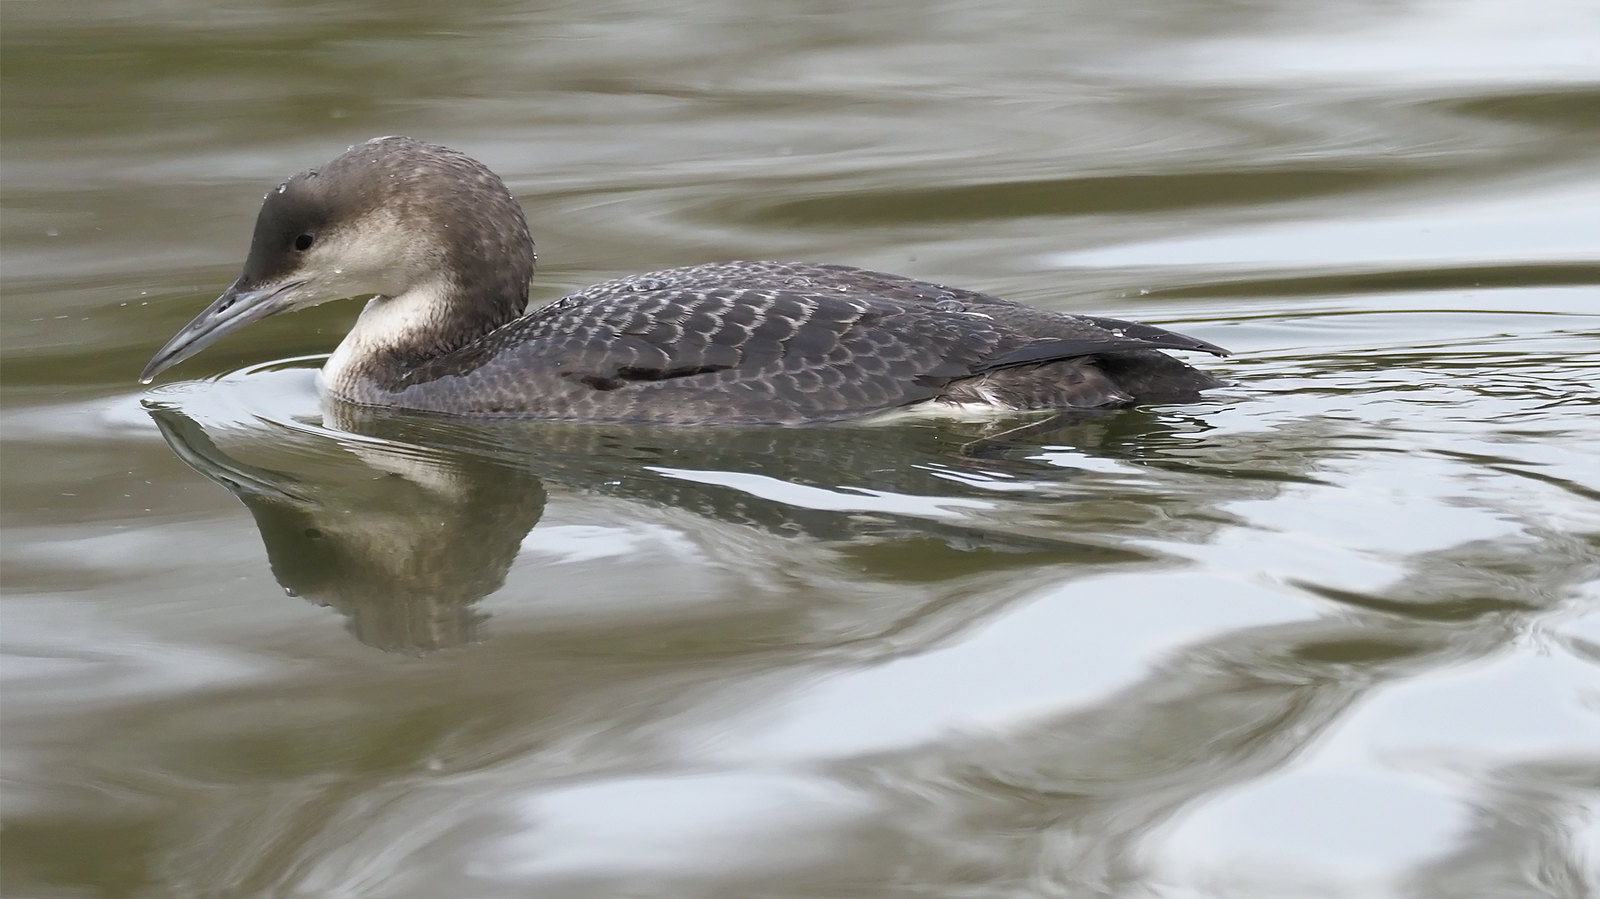 Juvenile Black-throated Diver